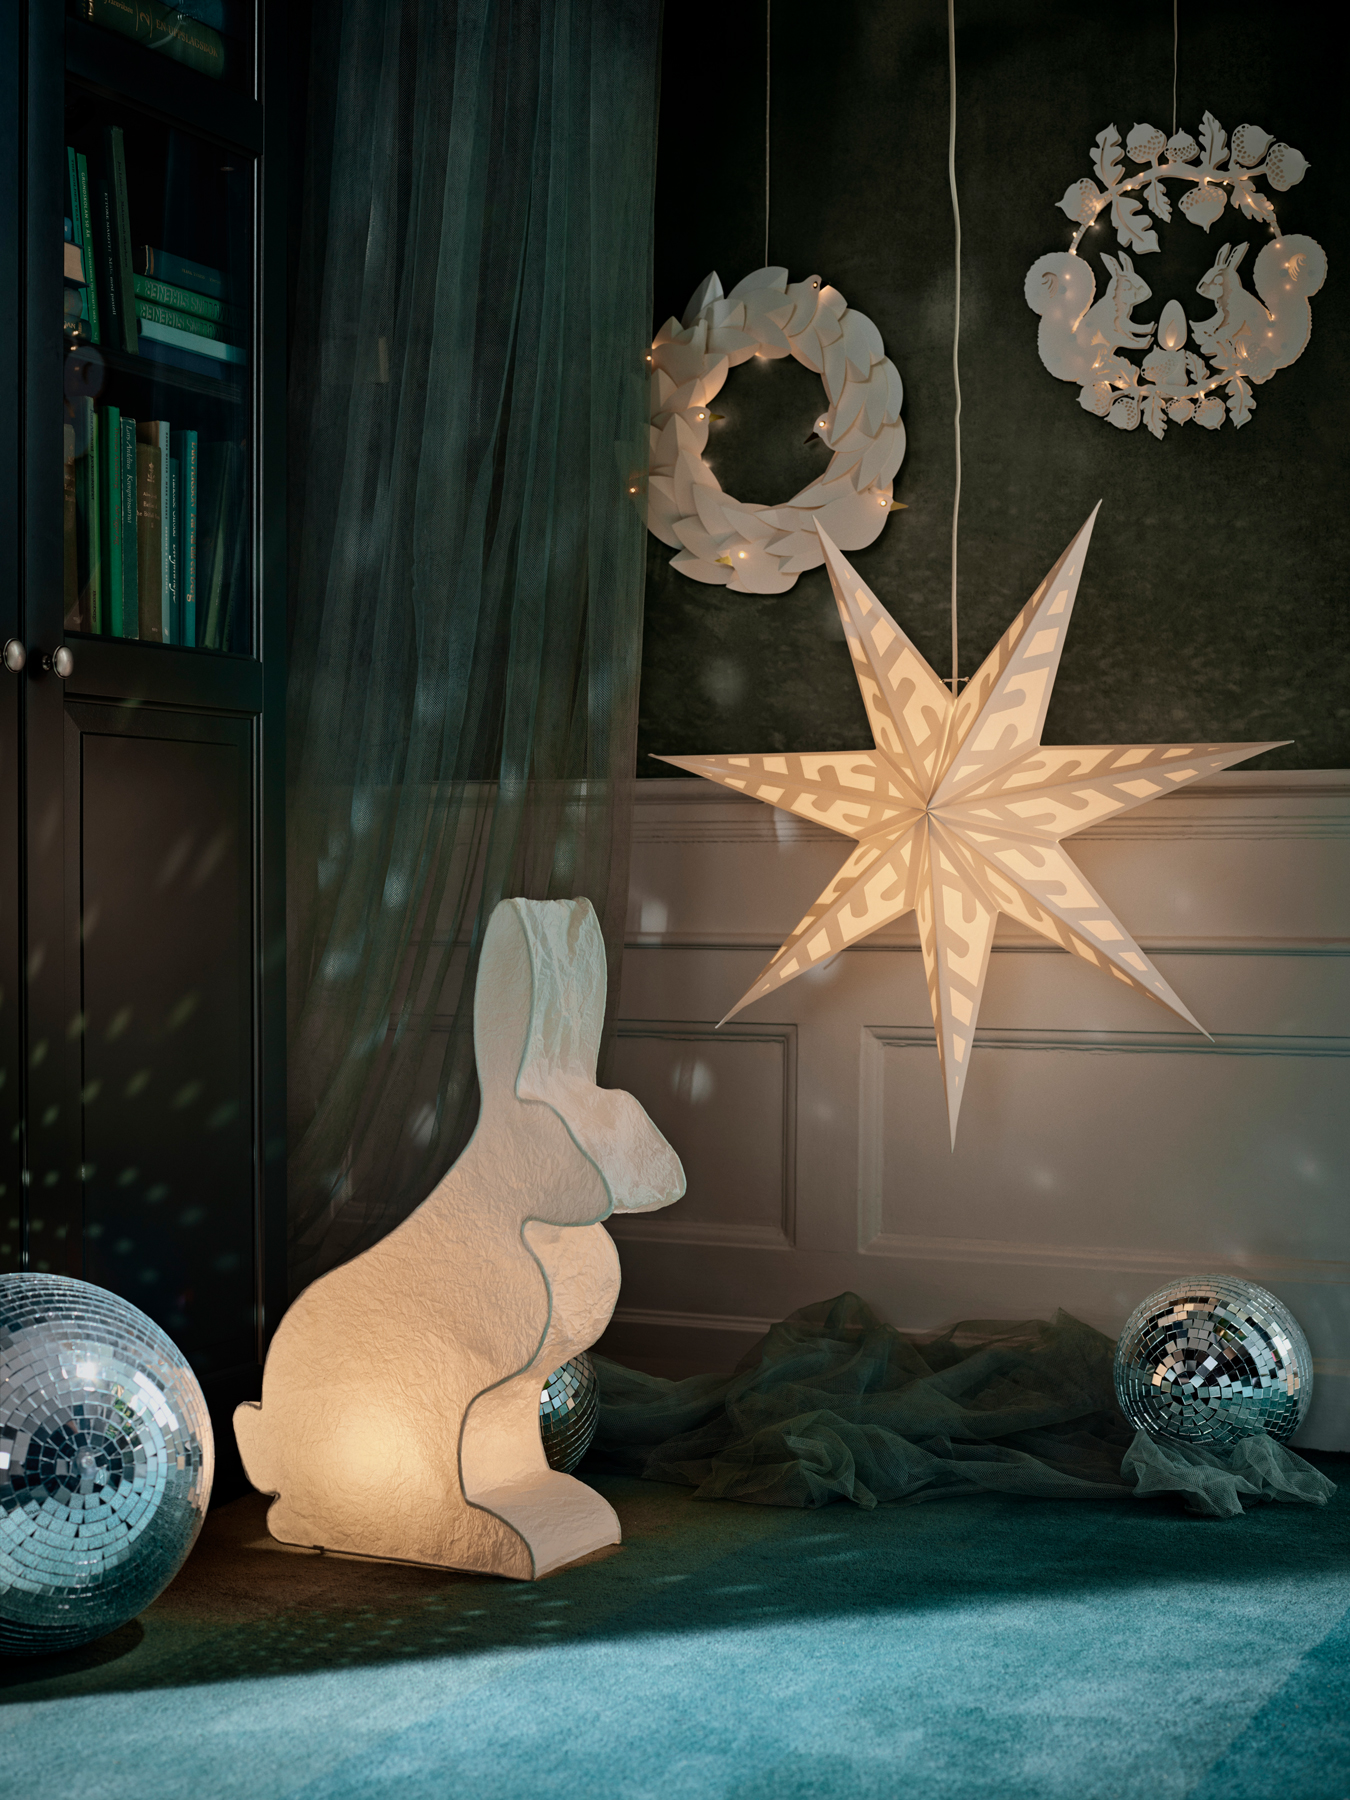 IKEA 2018 Holiday/Winter Collection STRÅLA LED Wreath, Battery-Operated, Doves